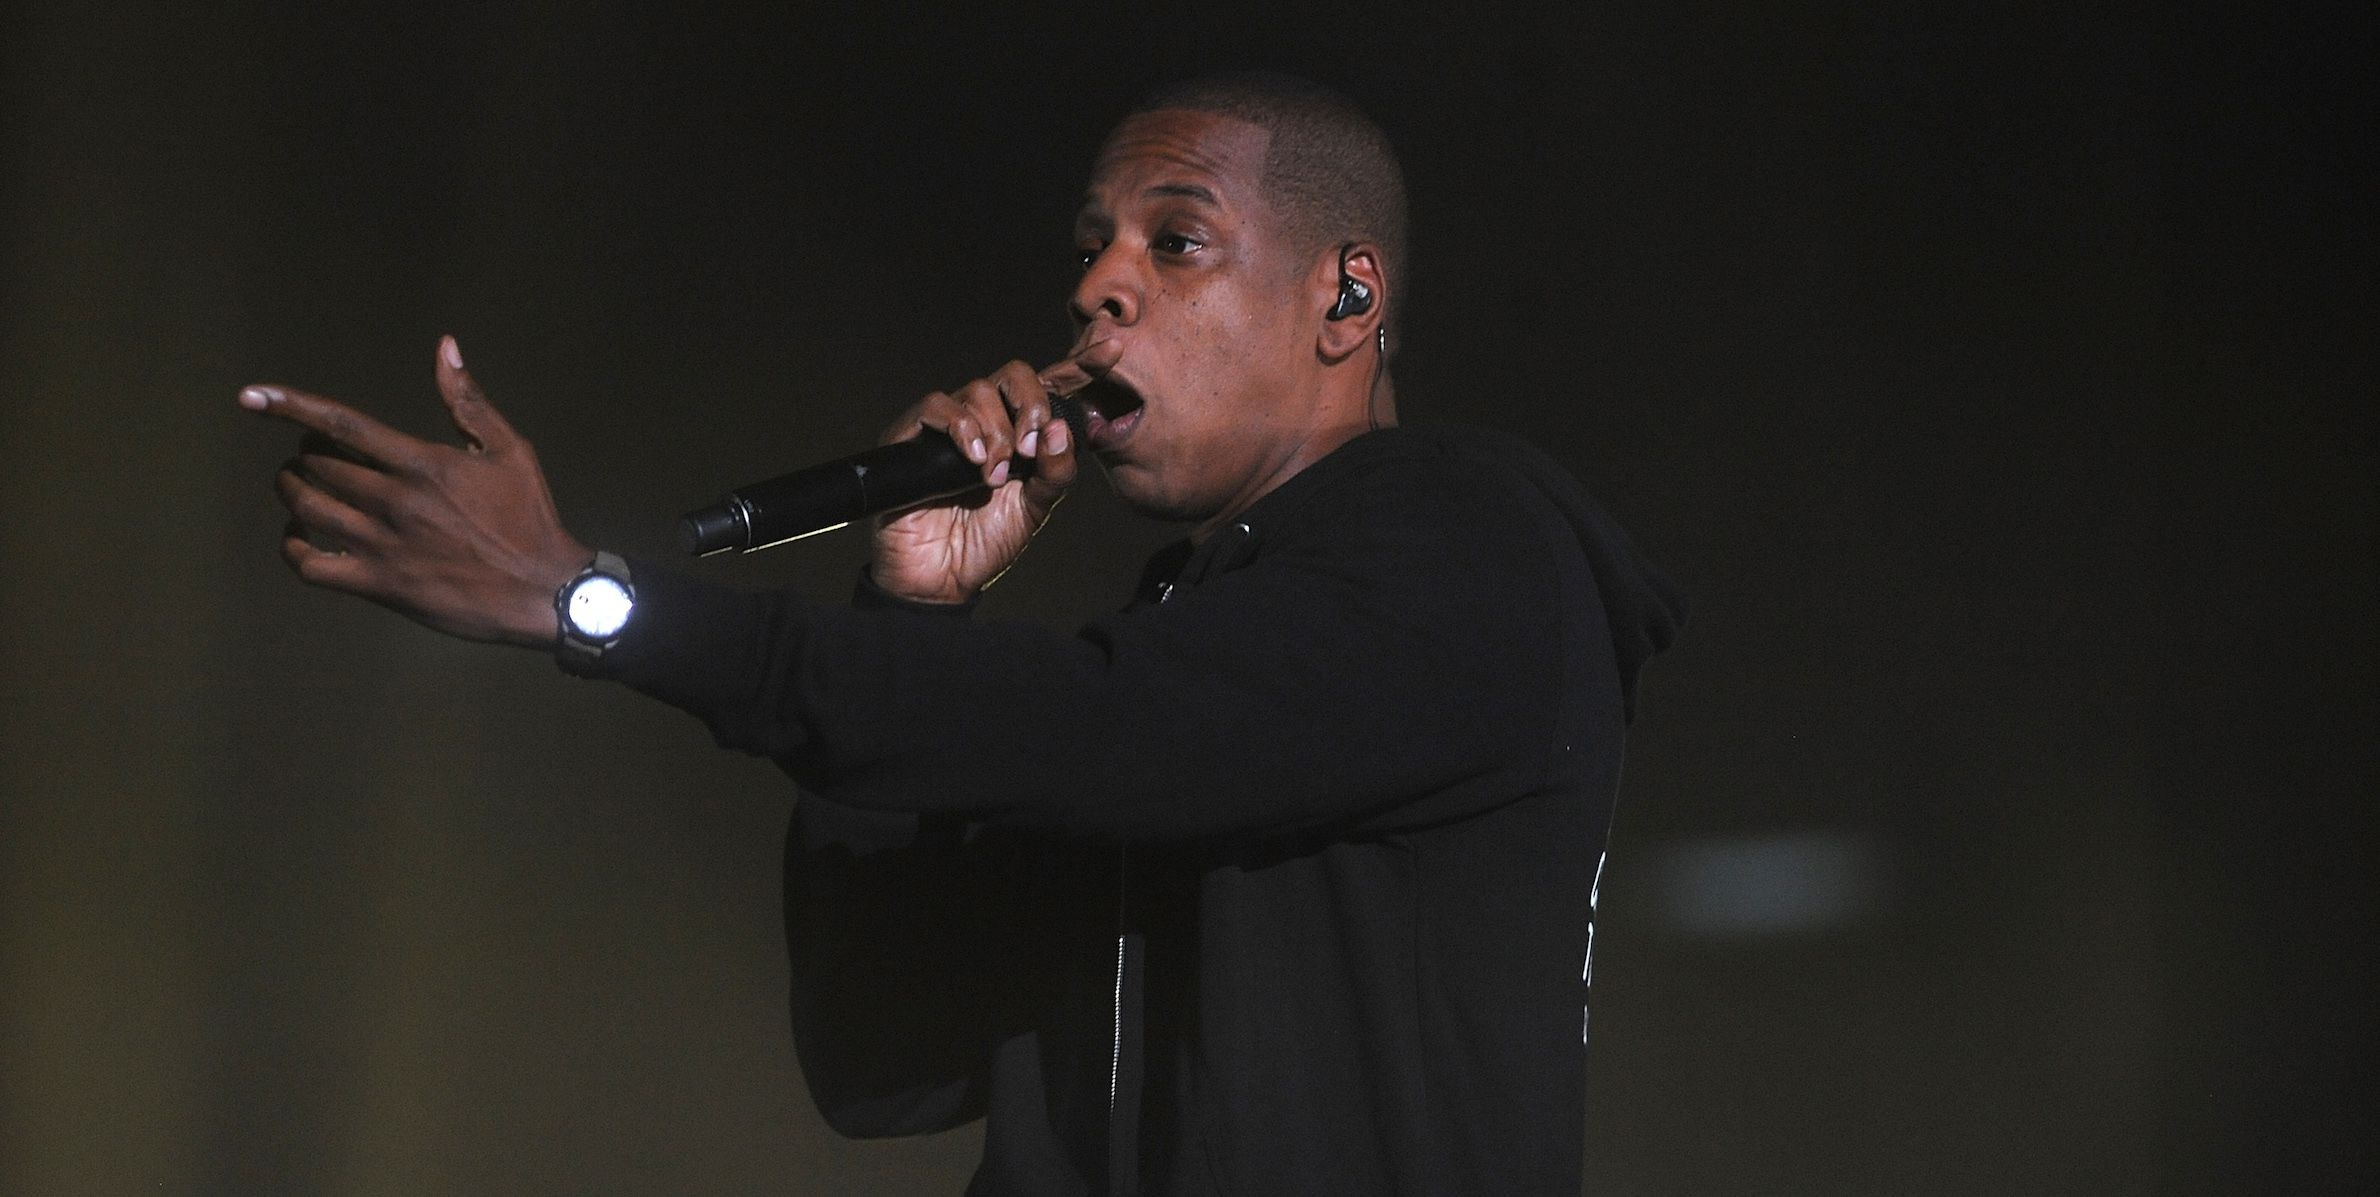 Jay-Z performs at the 3rd Global Citizen Festival at  Central Park on Saturday, Sept. 27, 2014 in New York. (Photo by Brad Barket/Invision/AP)